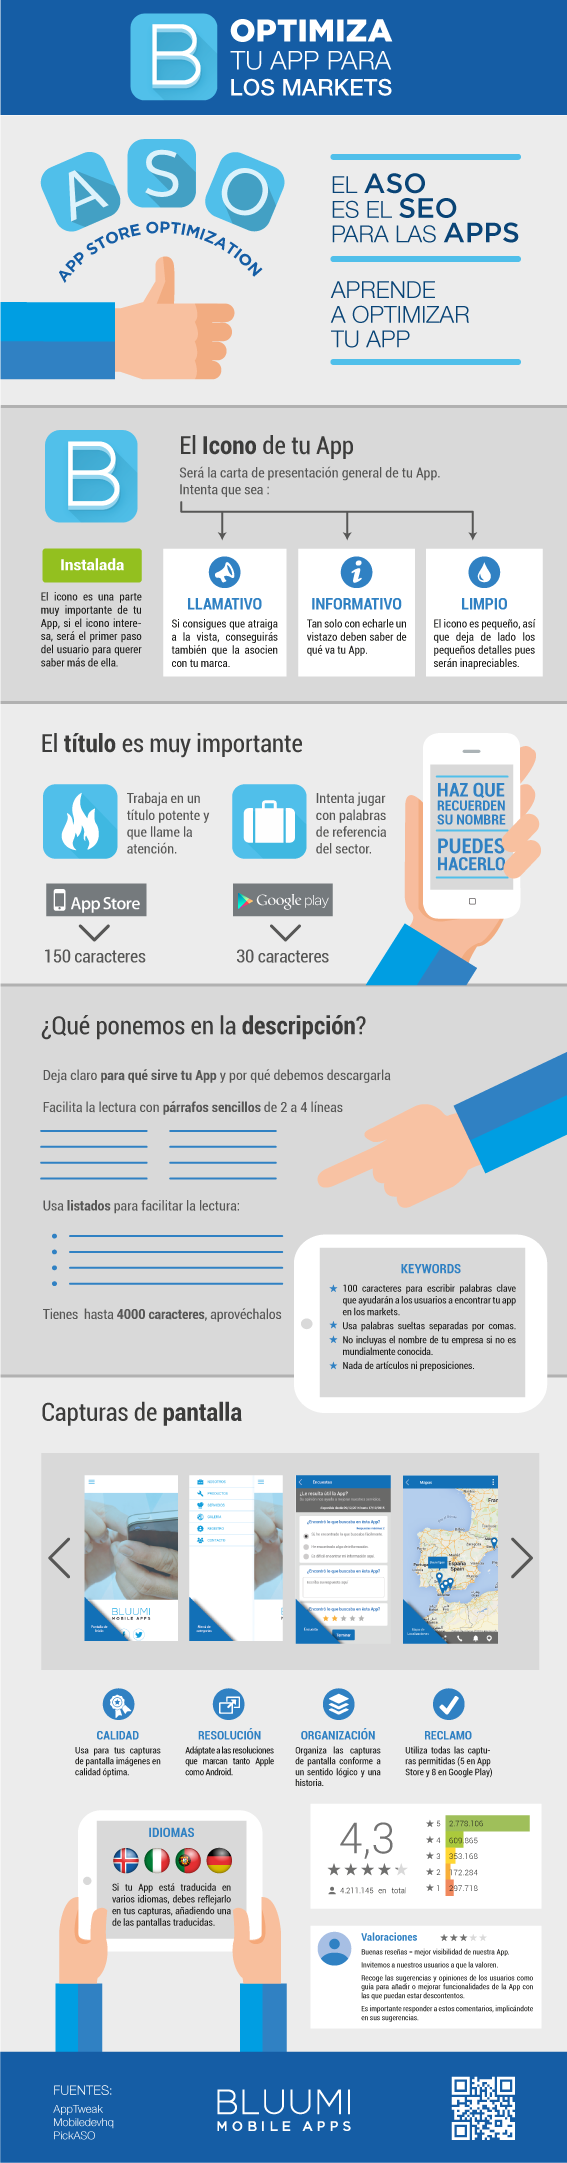 optimiza-app-marketis-infografia